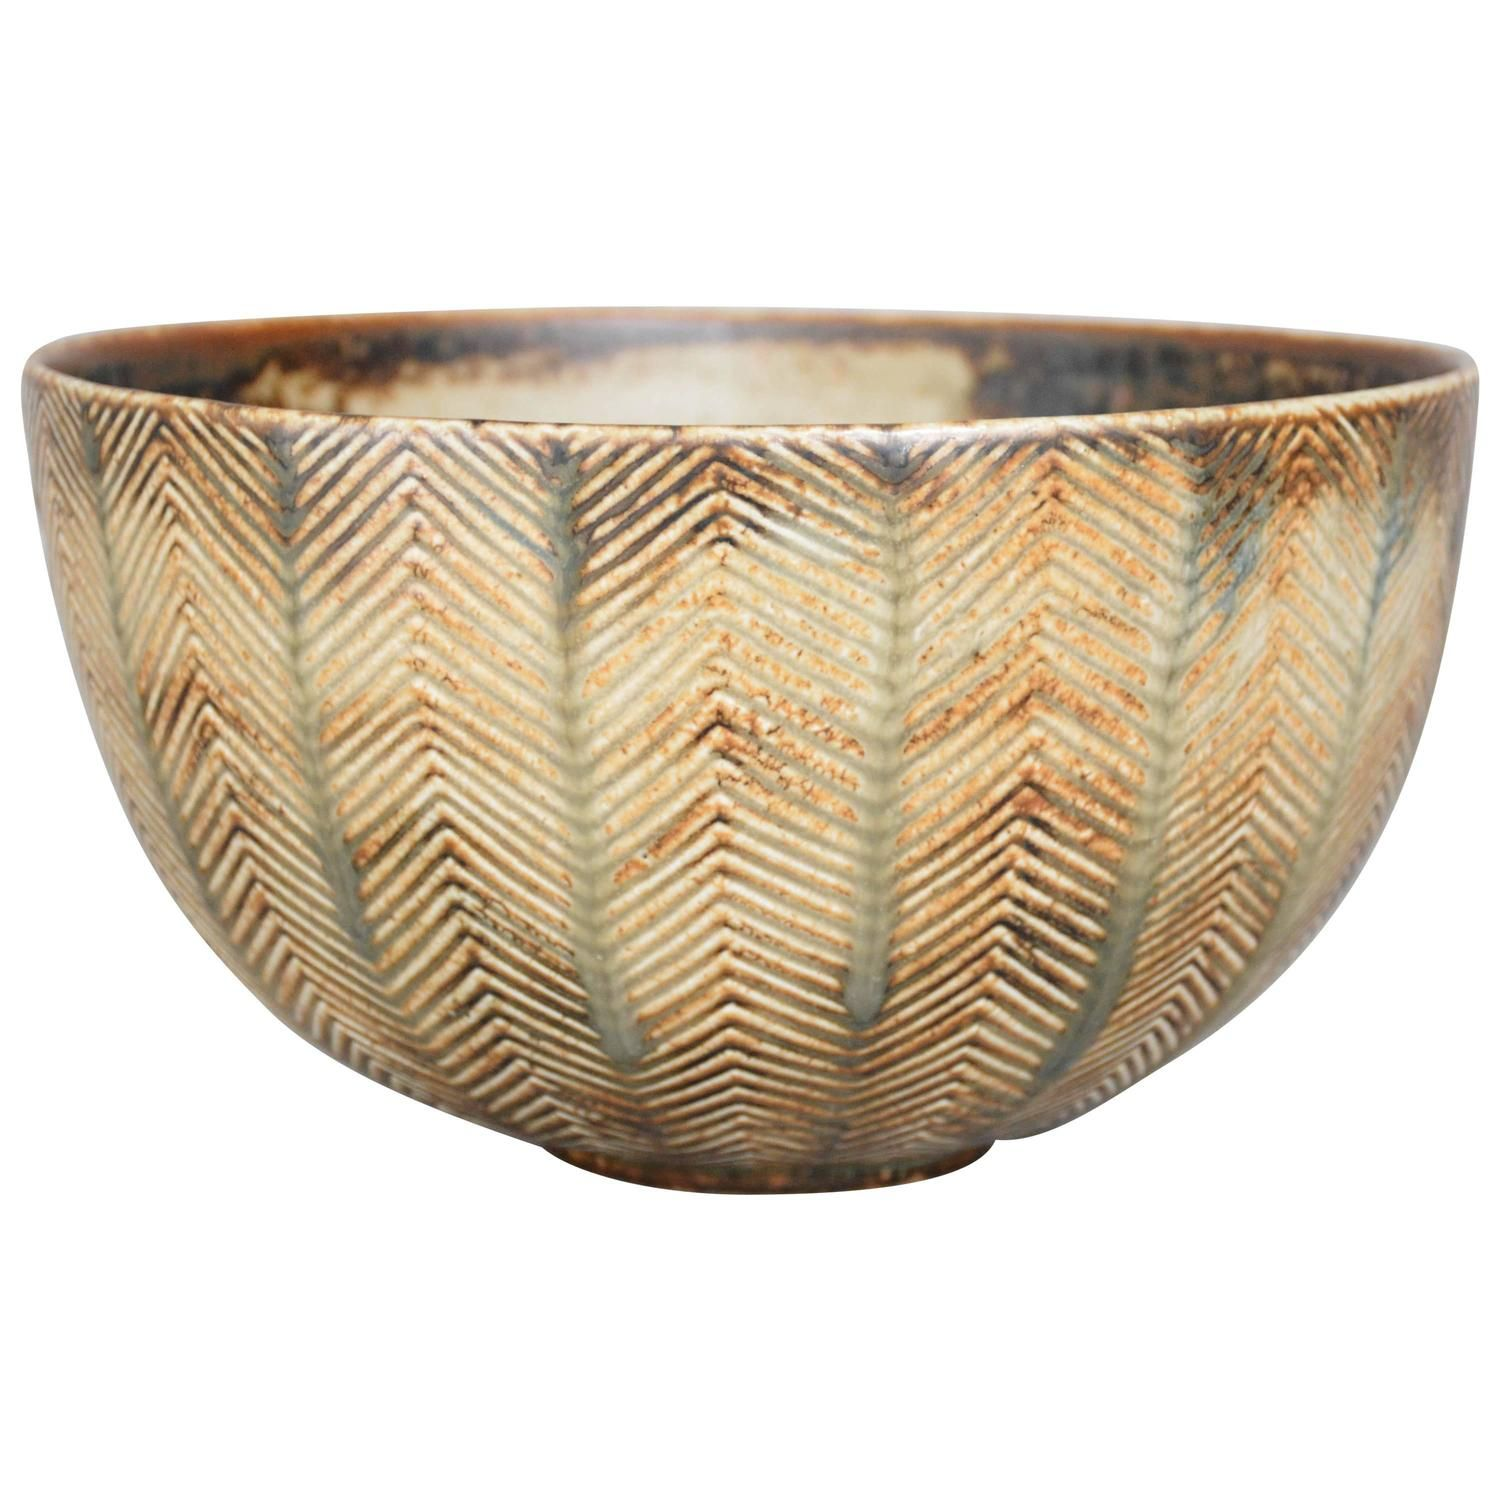 Axel Salto Stoneware Bowl for Royal Copenhagen, Denmark   From a unique collection of antique and modern ceramics at…